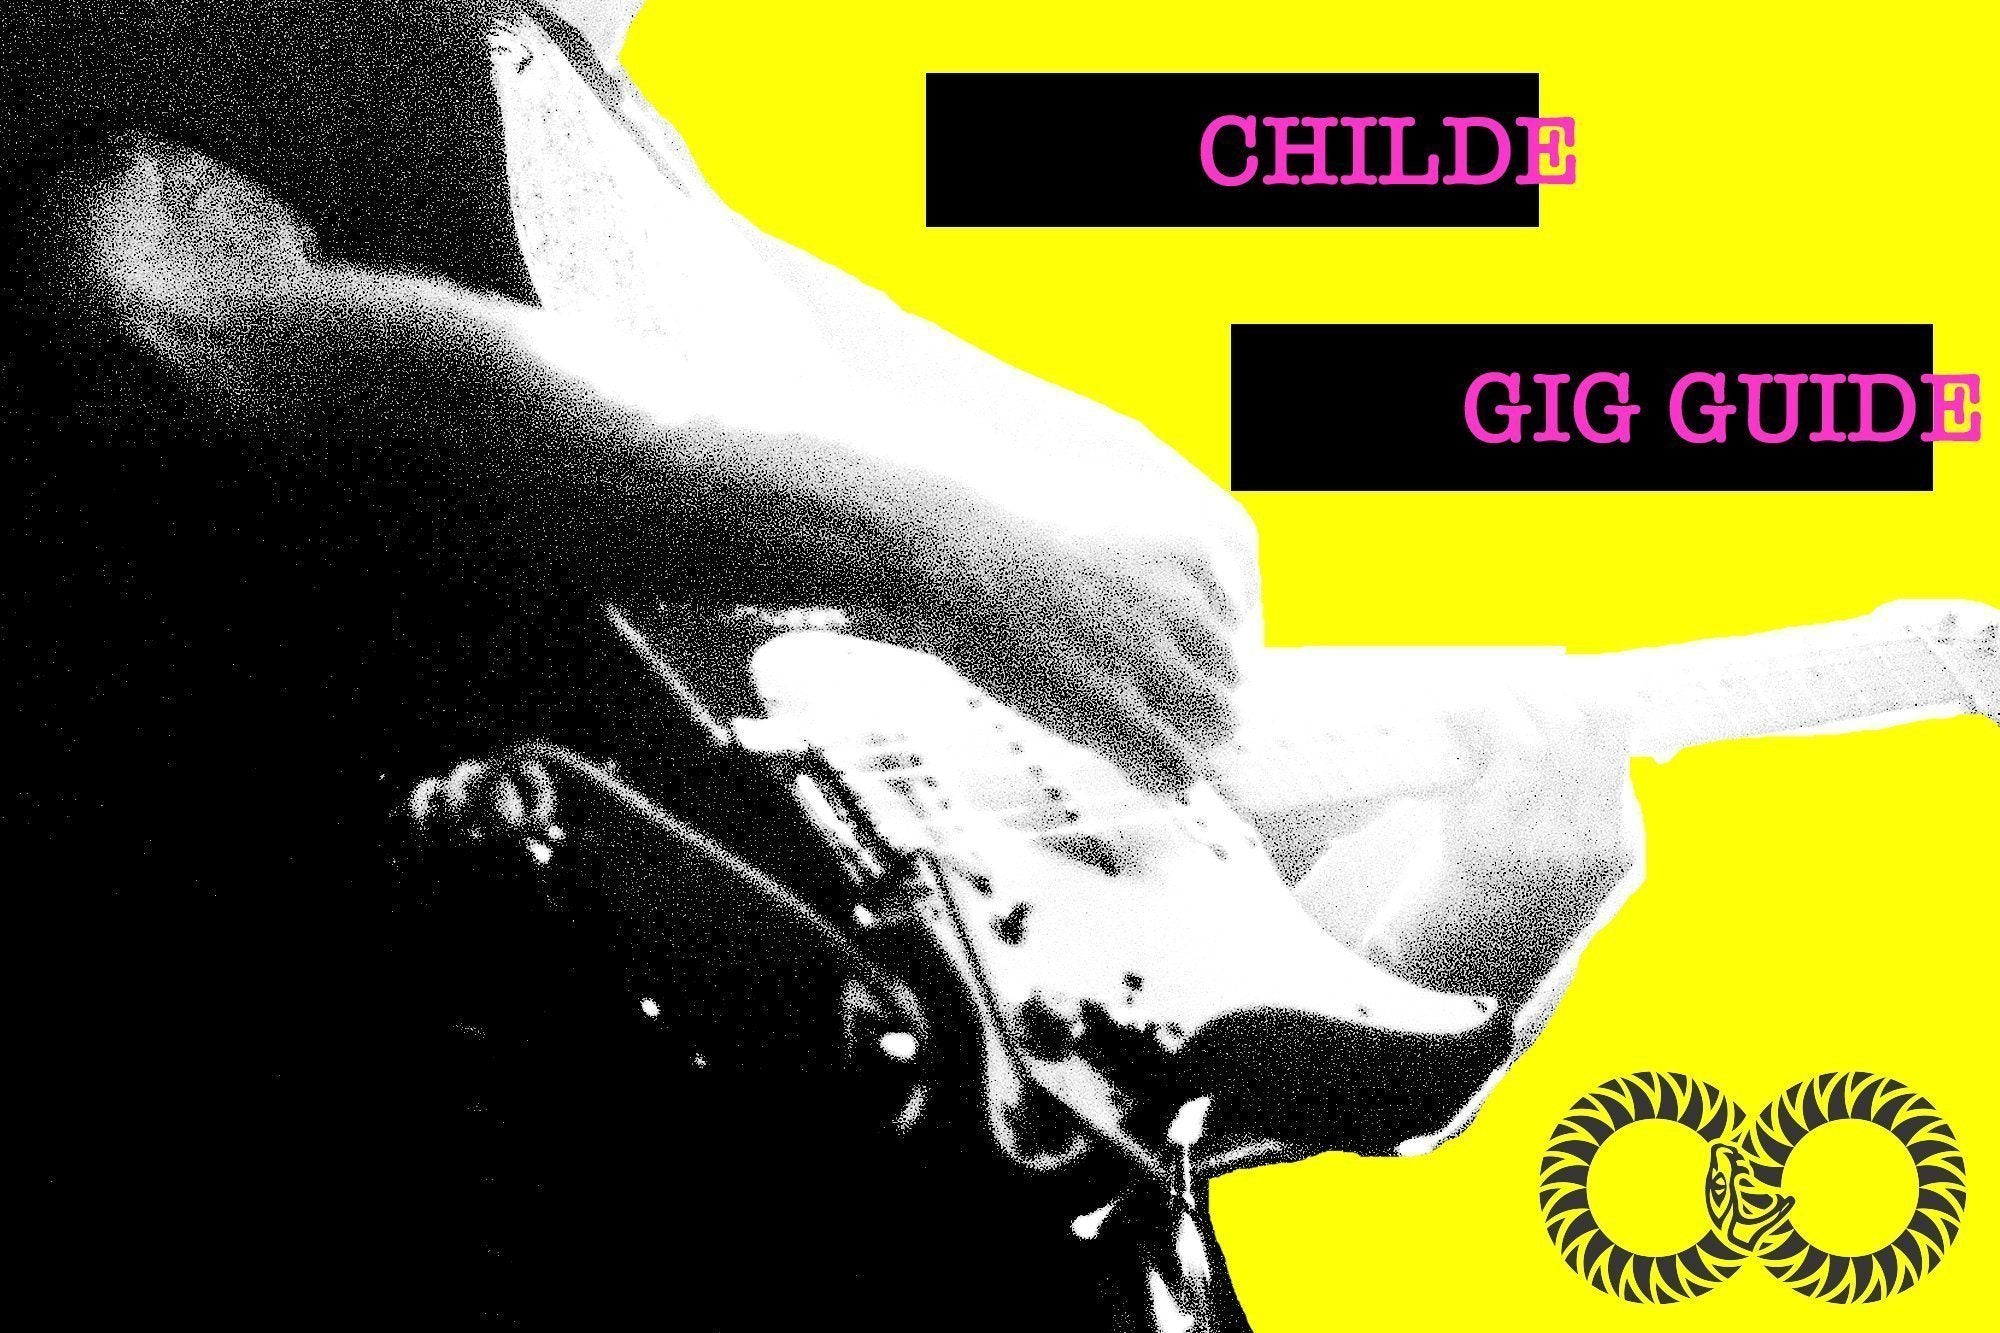 CHILDE | Gig Guide (June 26)